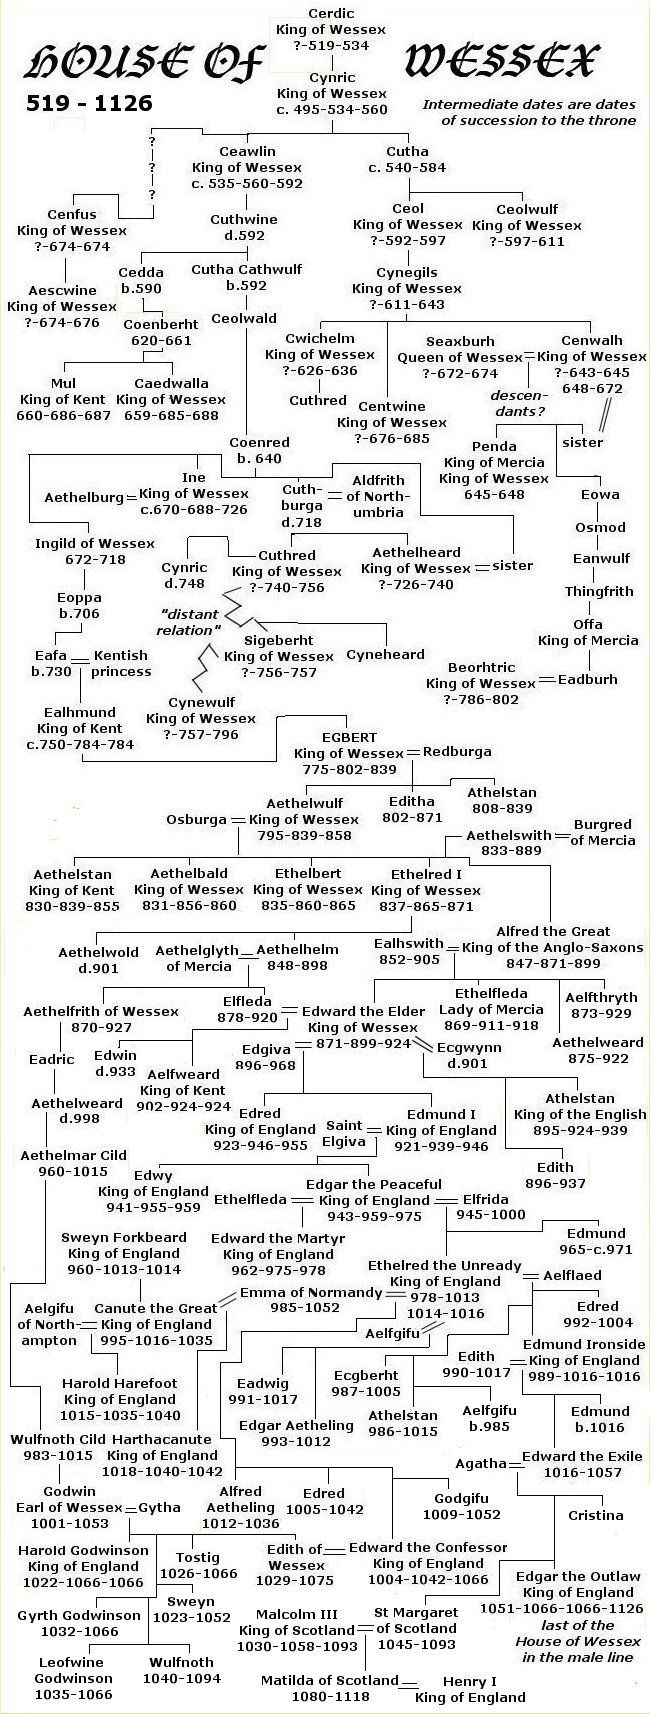 must see english royal family tree pins royal family trees cynric king of wessex son of cerdic~king from 534 560 monarchy treeroyal monarchyenglish